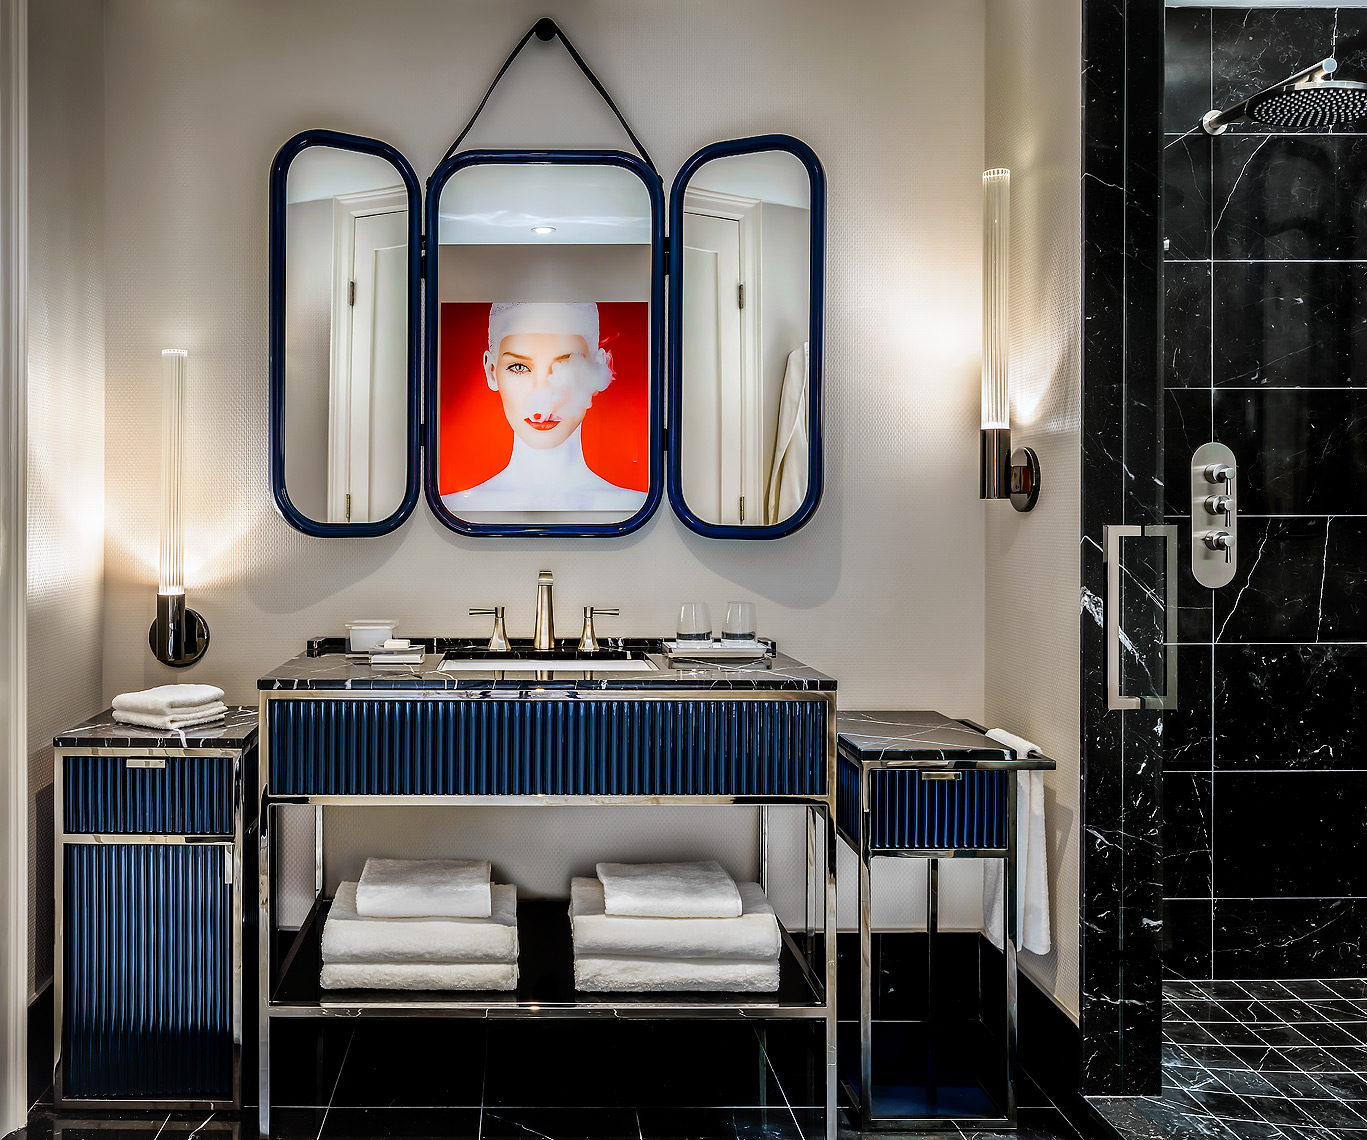 Bisha Hotel Bathroom. Design by Studio Munge - Hotel Photography